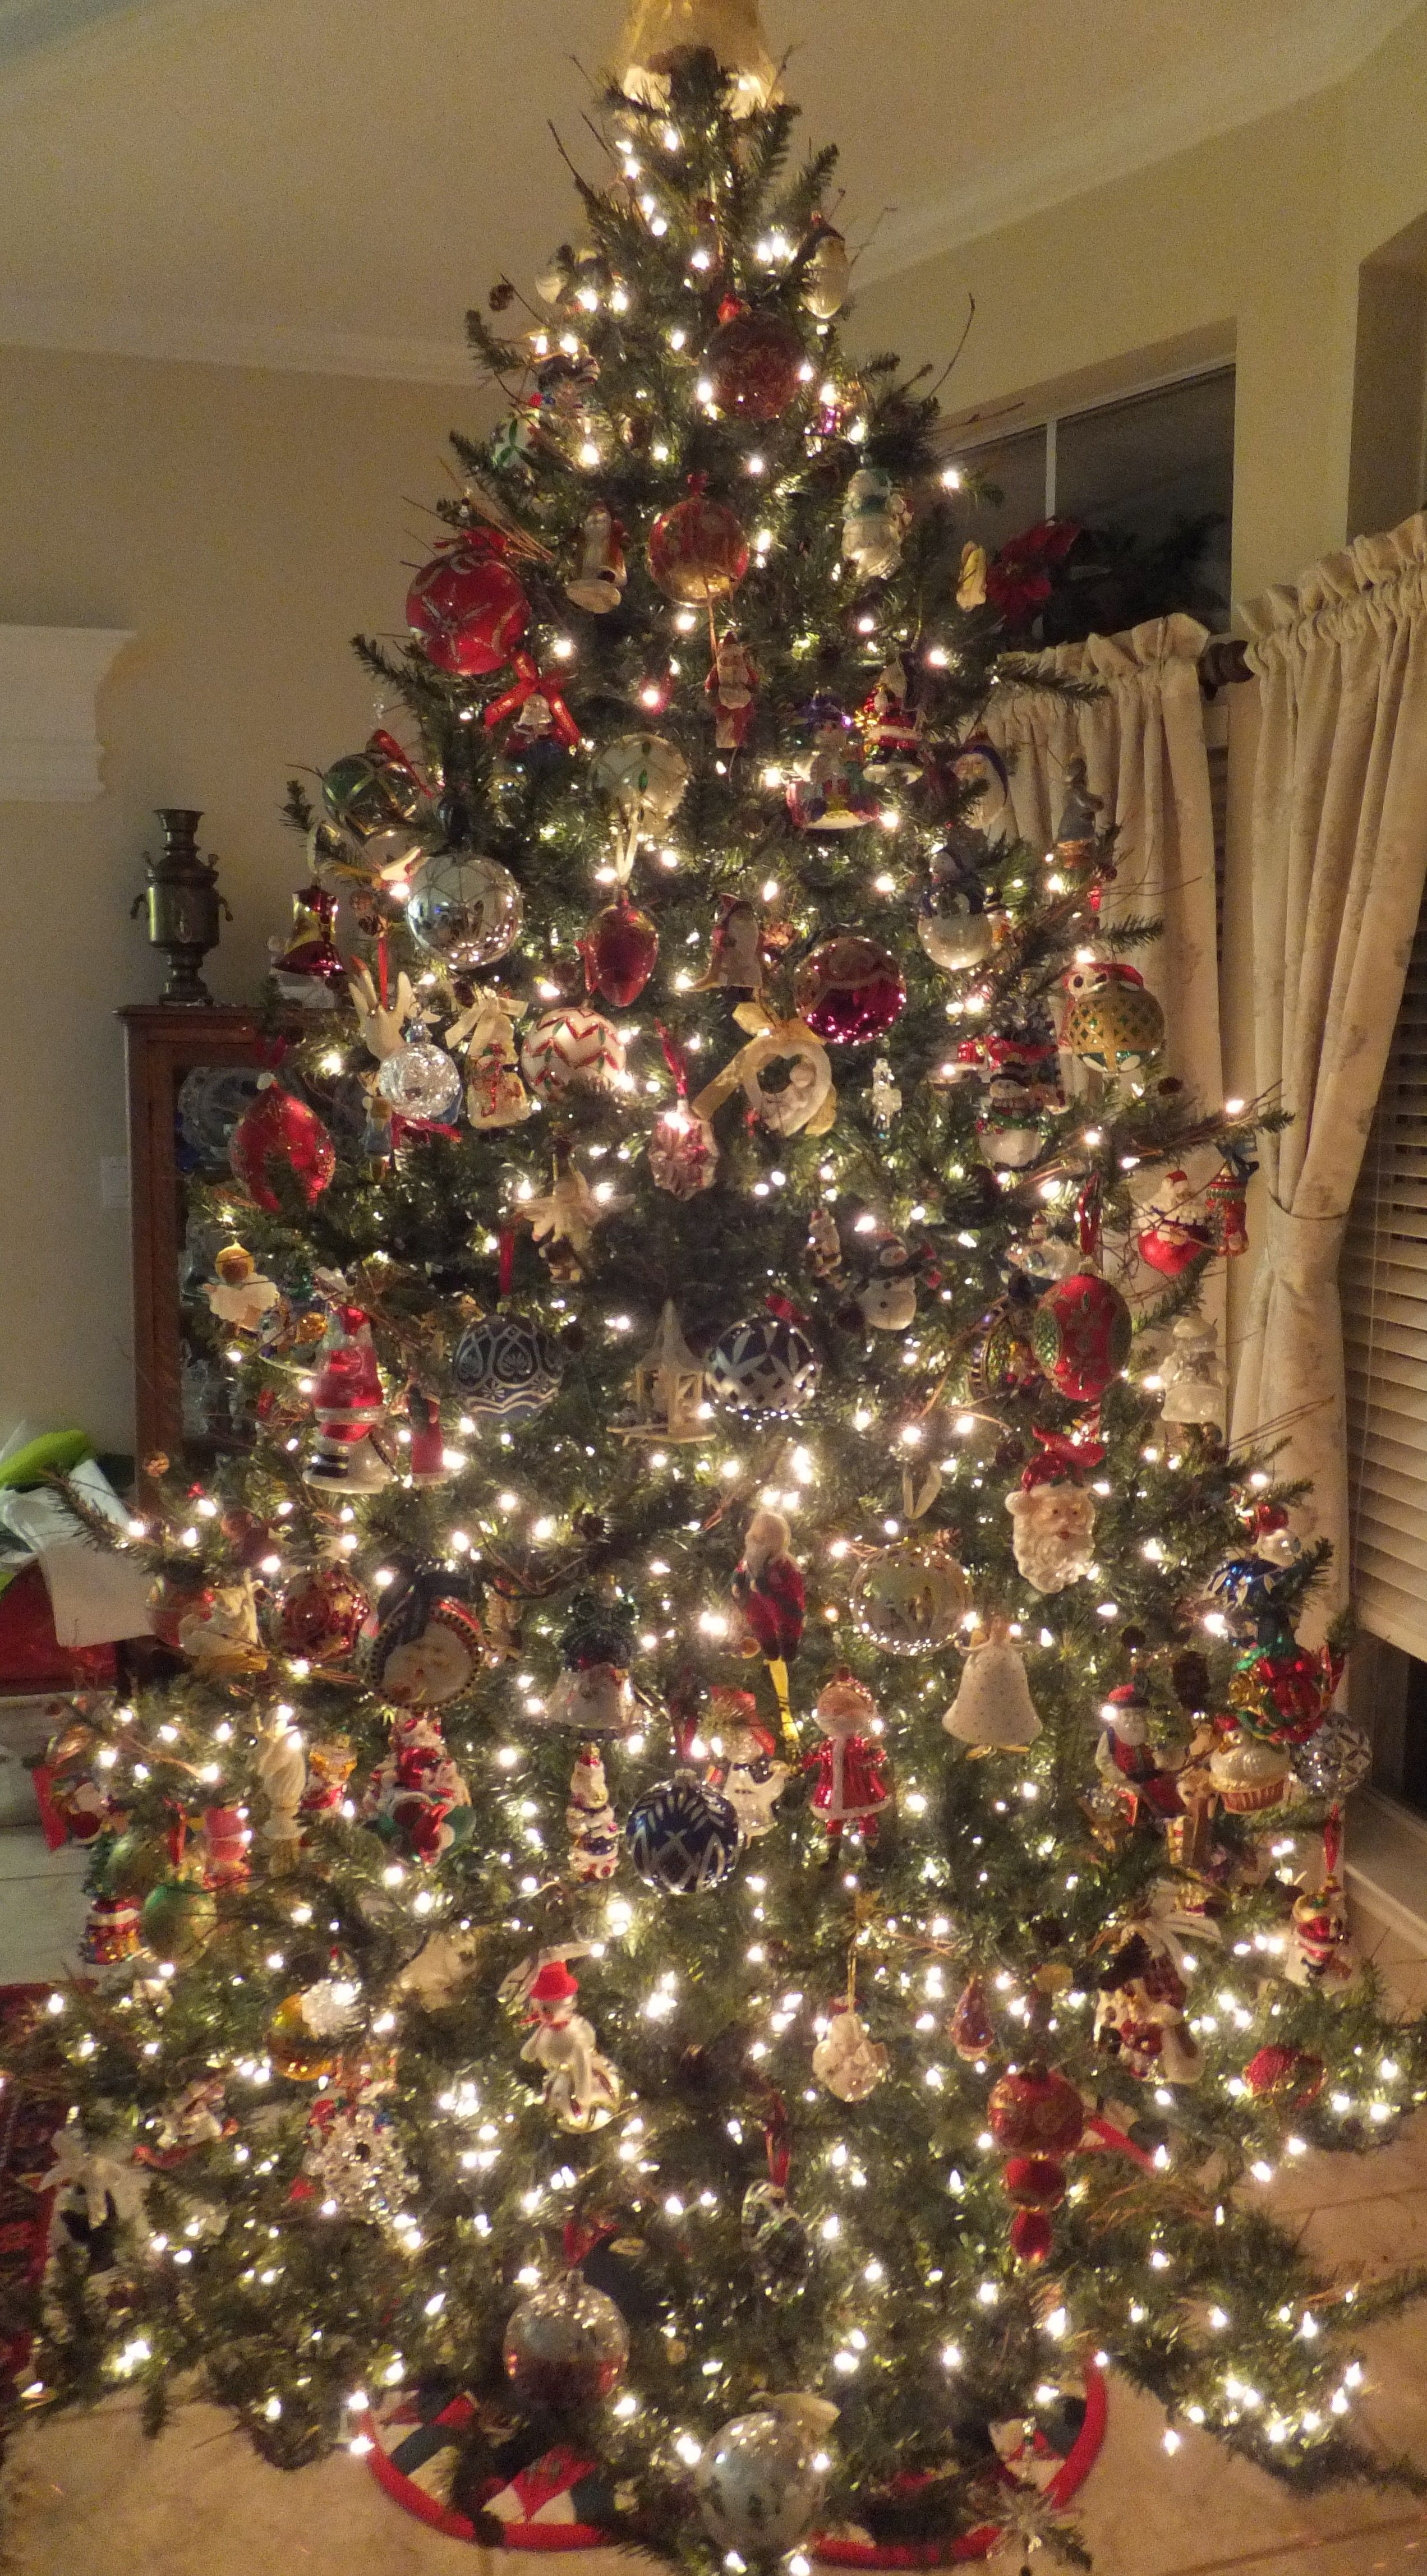 House of Hatton and Waterford Christmas Tree | Christmas trees ...